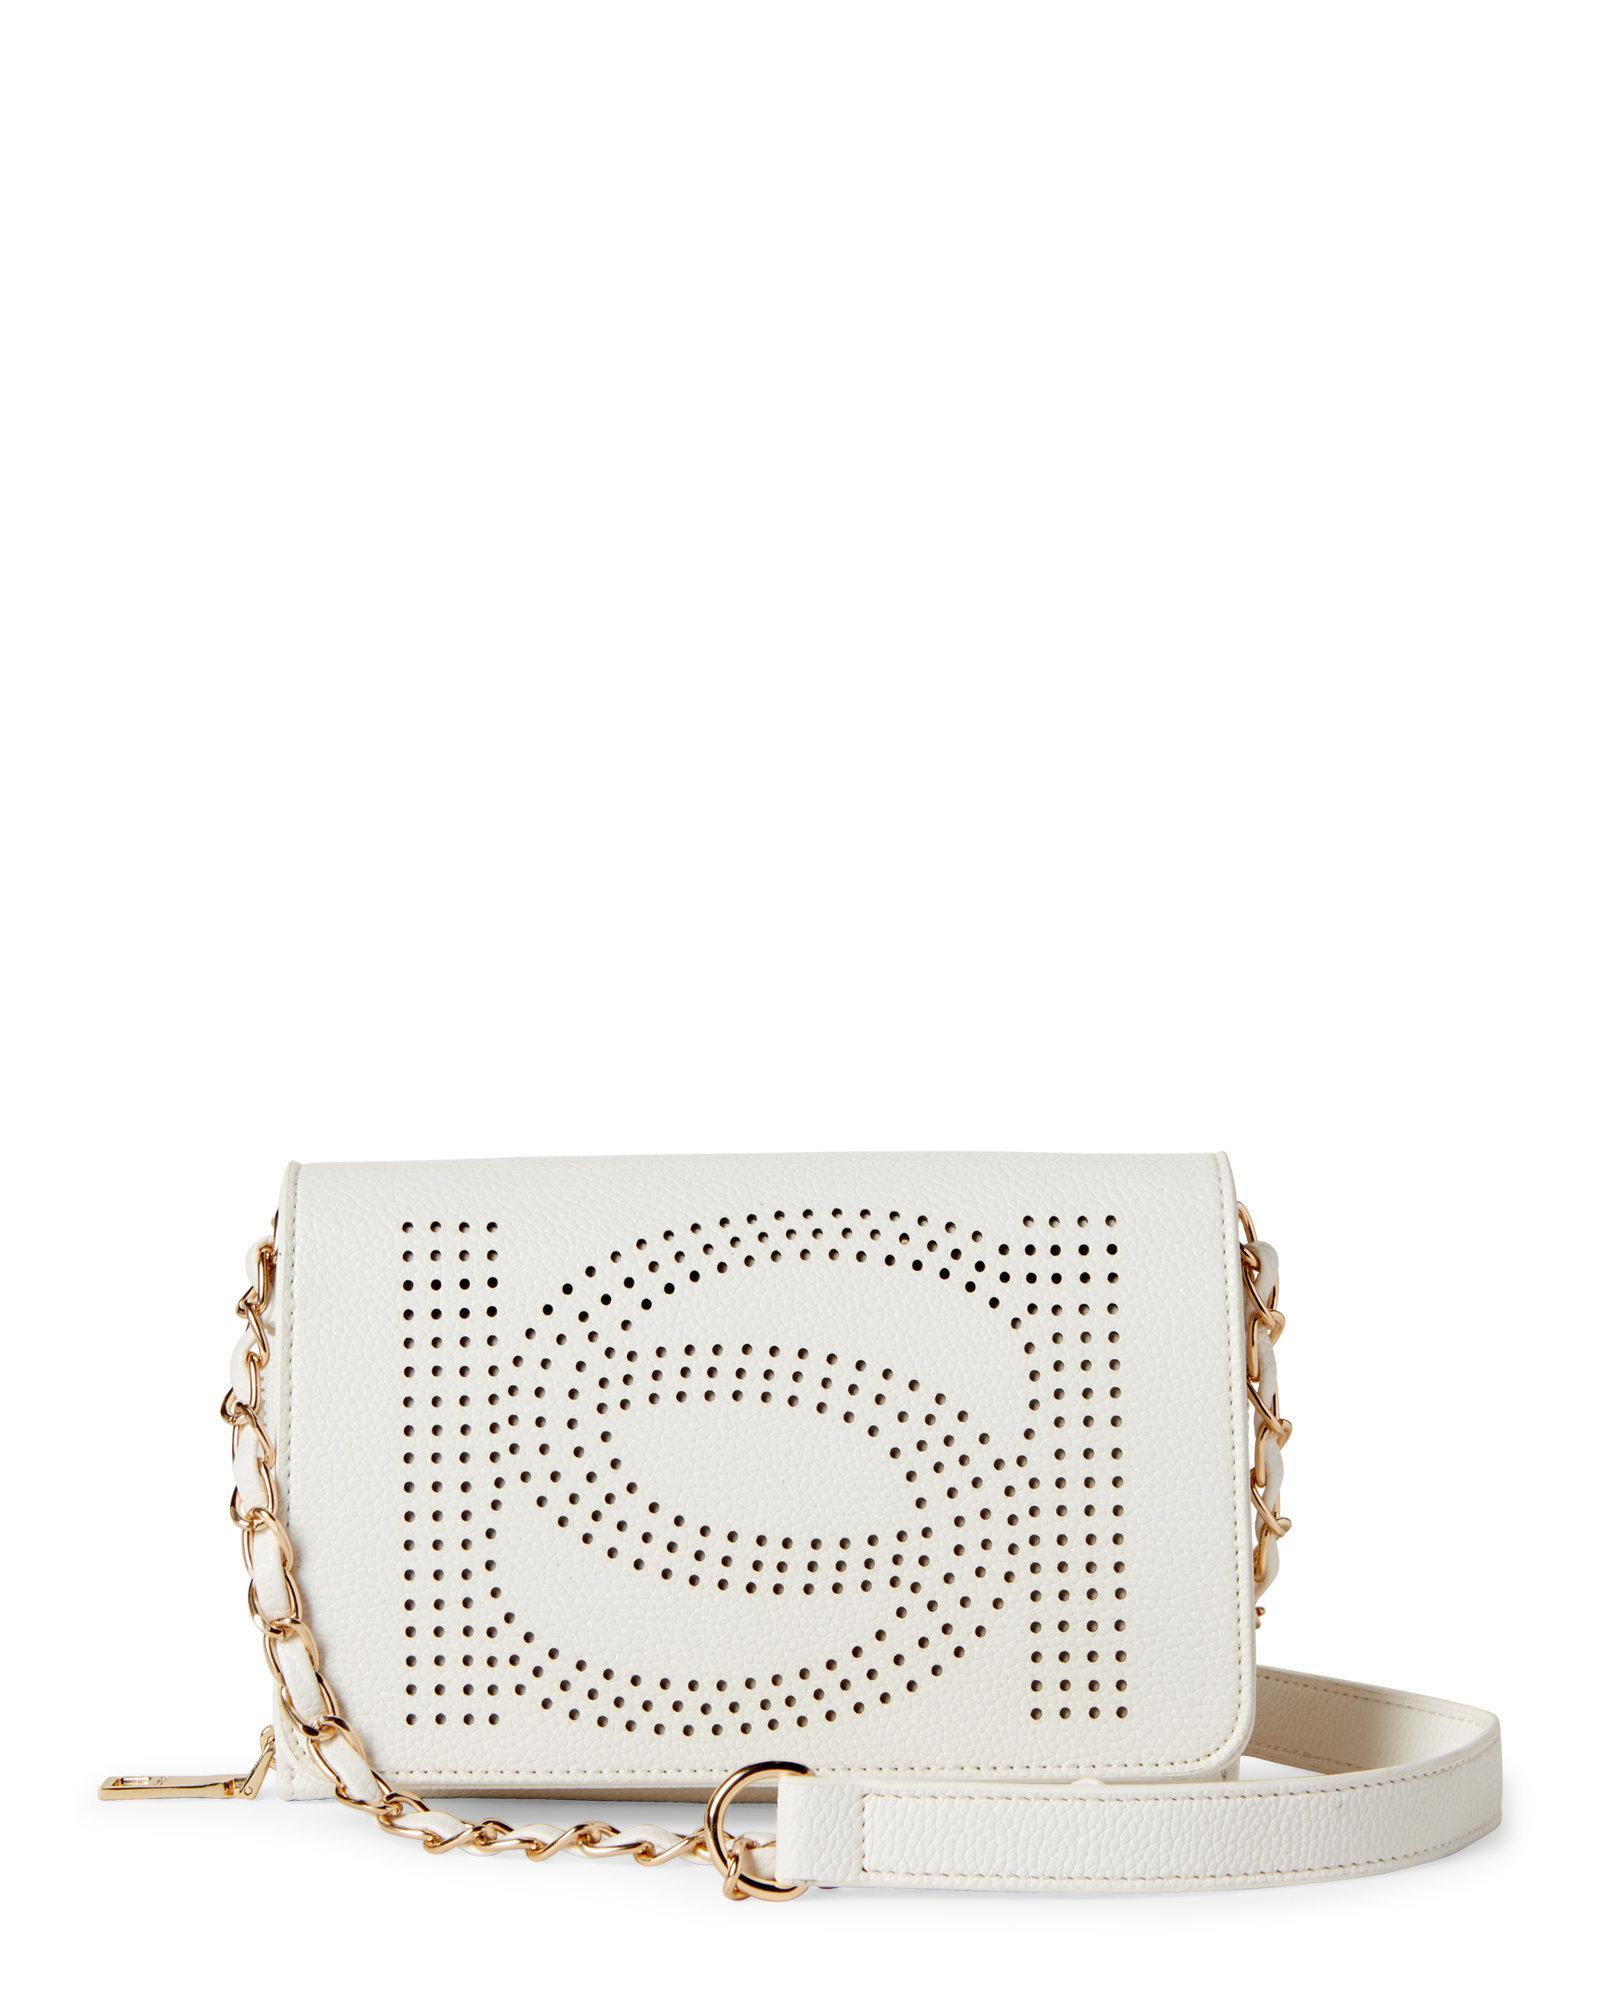 cc0e30abc6 Lyst - Bebe Holly Perforated Logo Crossbody in White